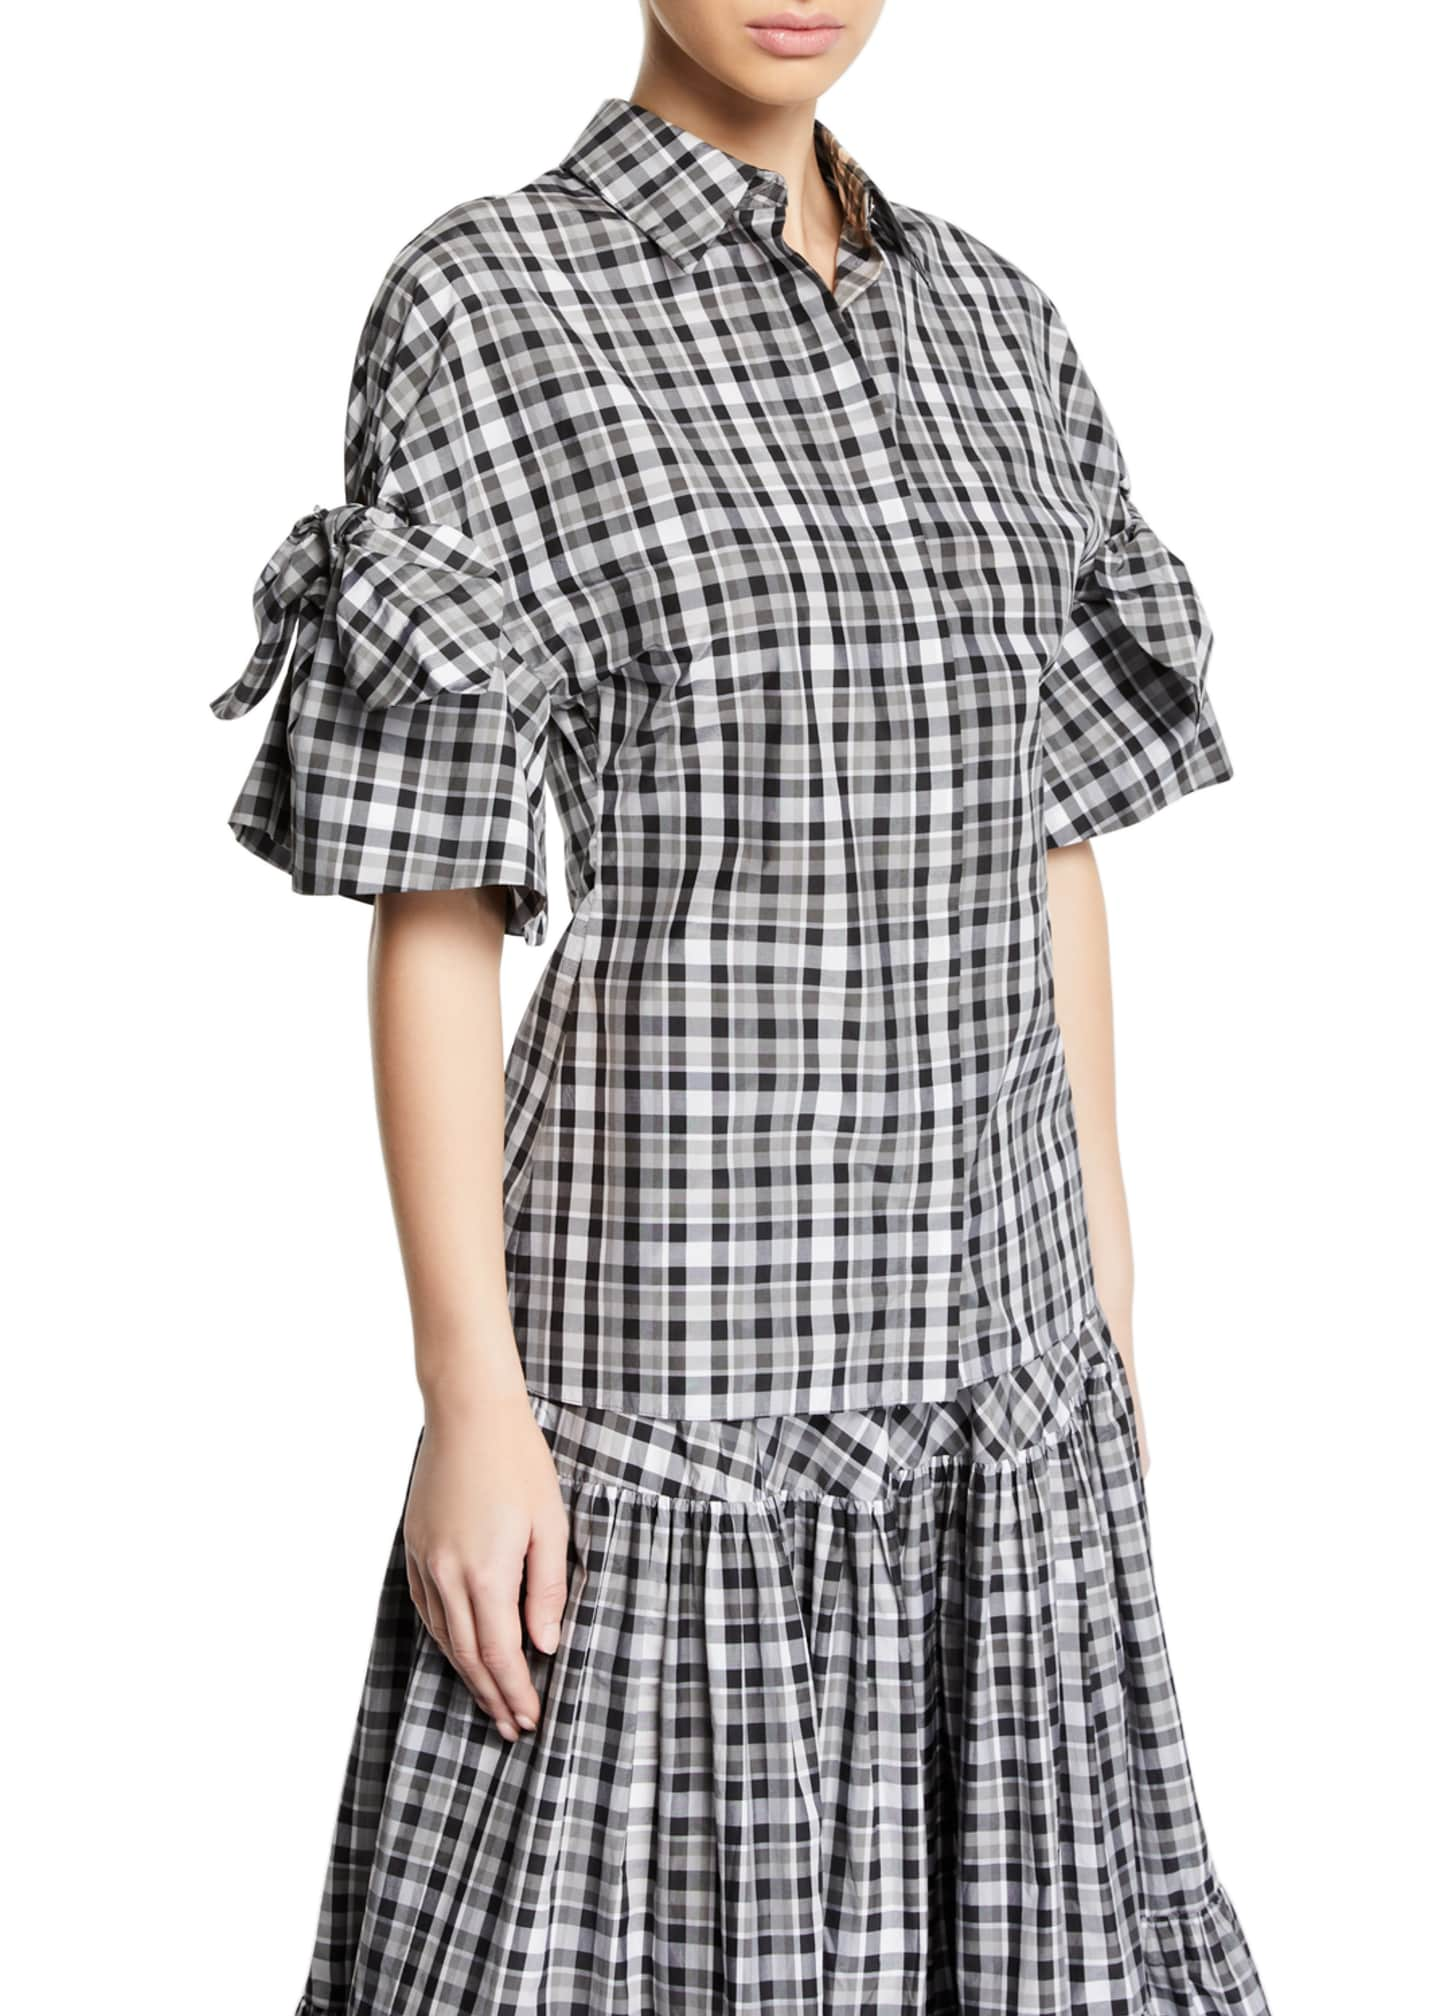 Michael Kors Collection Tie-Sleeve Madras Plaid Button Front